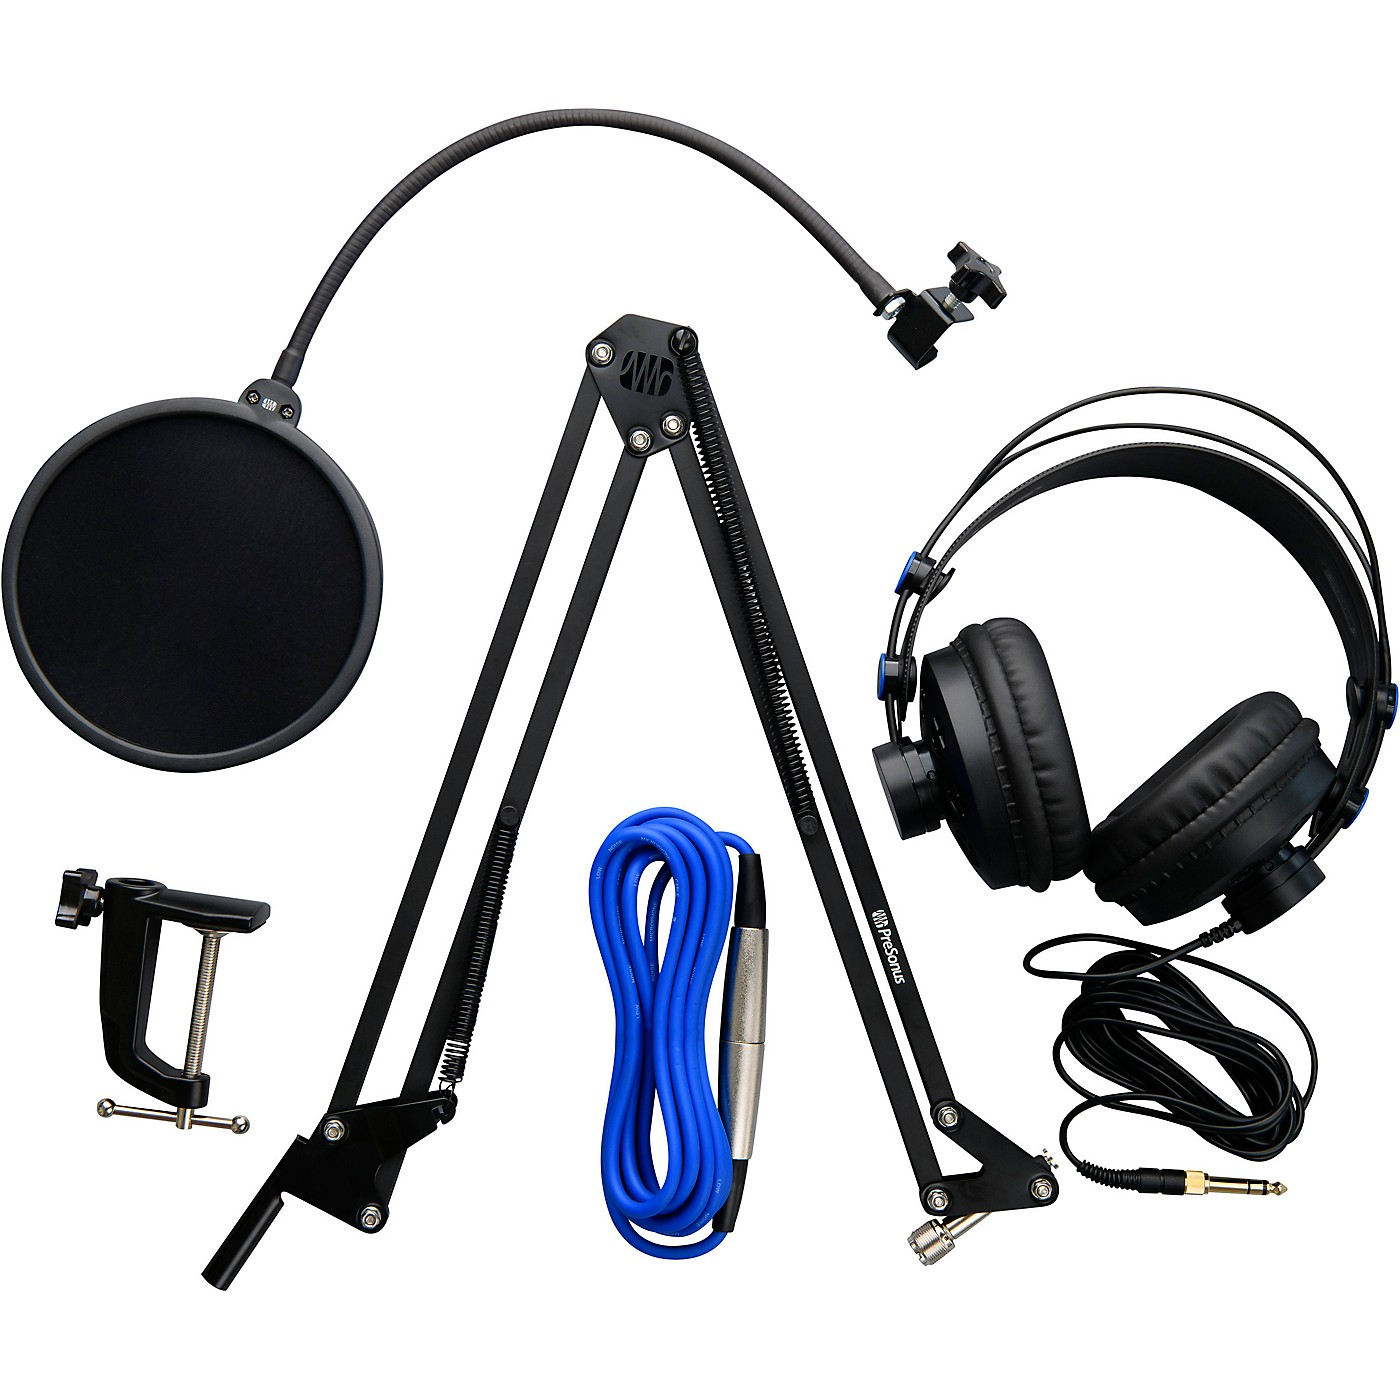 Presonus Broadcast Accessory Pack - Includes Microphone Boom Arm, Pop Filter, HD-7 Headphones & XLR Cable thumbnail